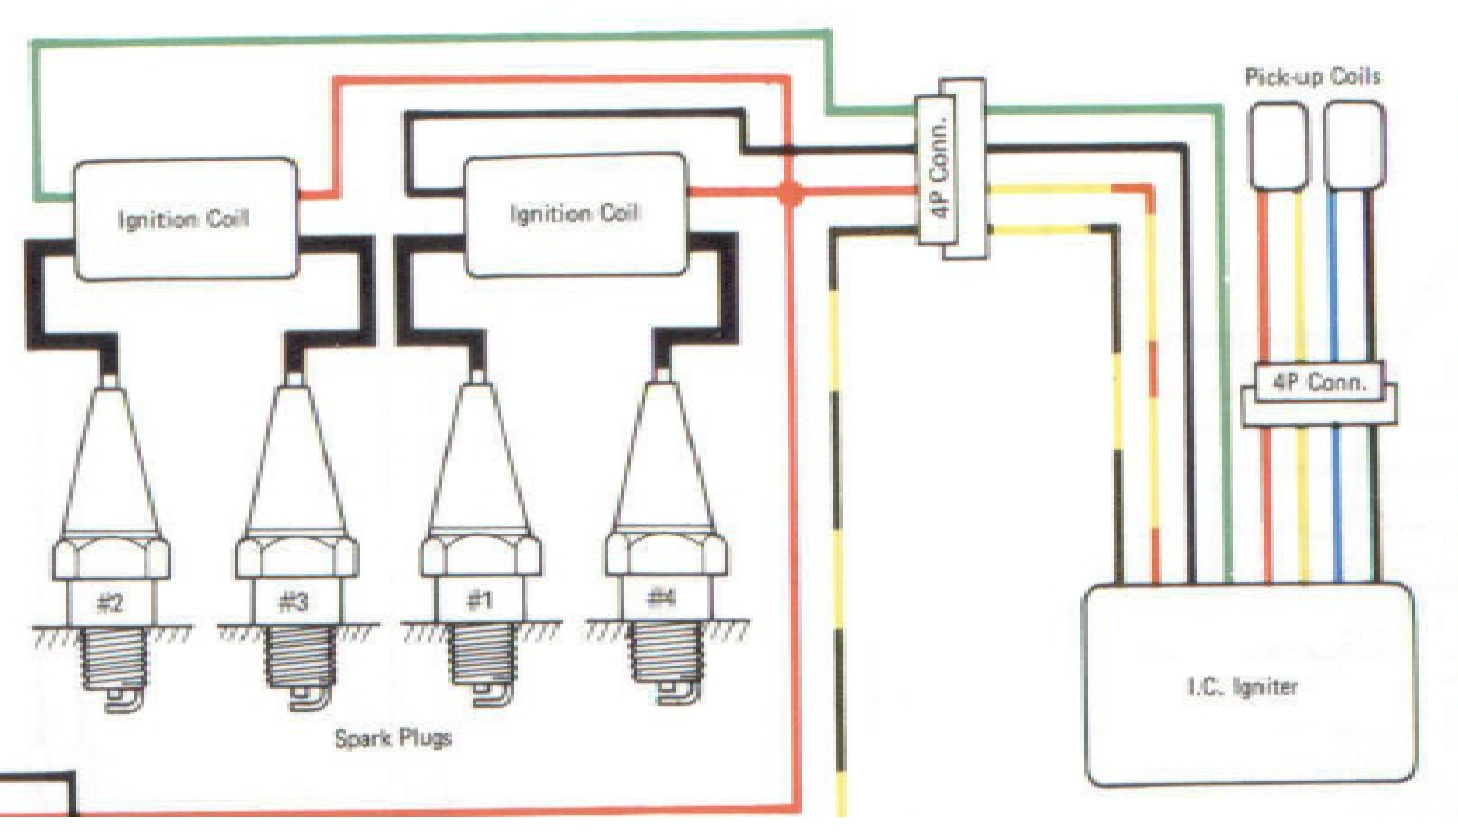 dyna ignition coils wiring diagram for kz1000 mk2 1980 wire Harley-Davidson Ignition Wiring Diagram